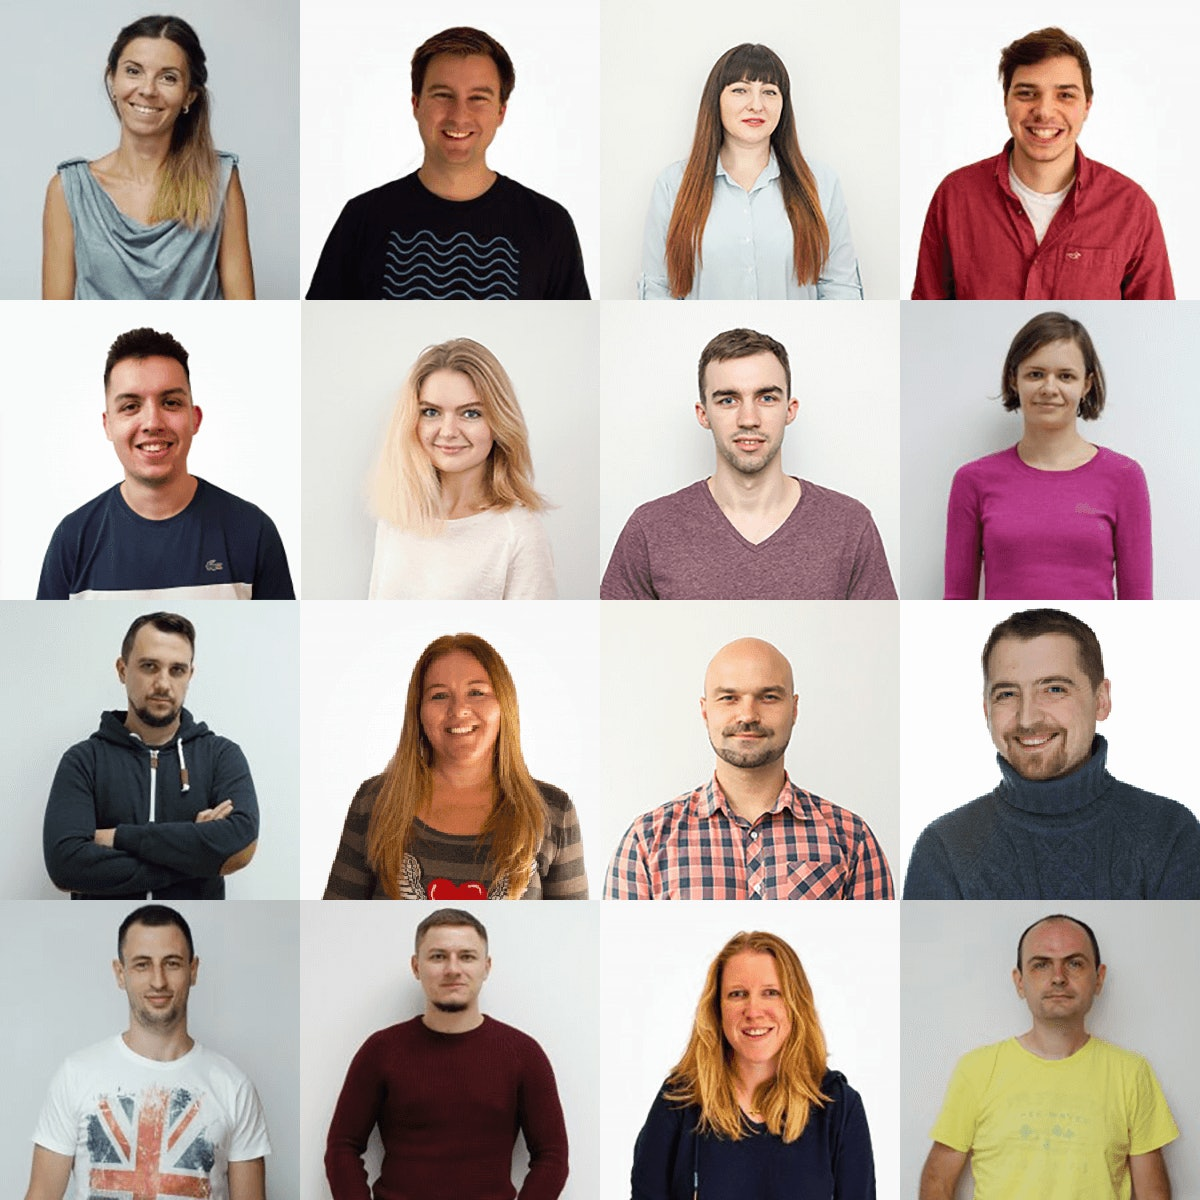 New Faces at BrightLocal in 2018